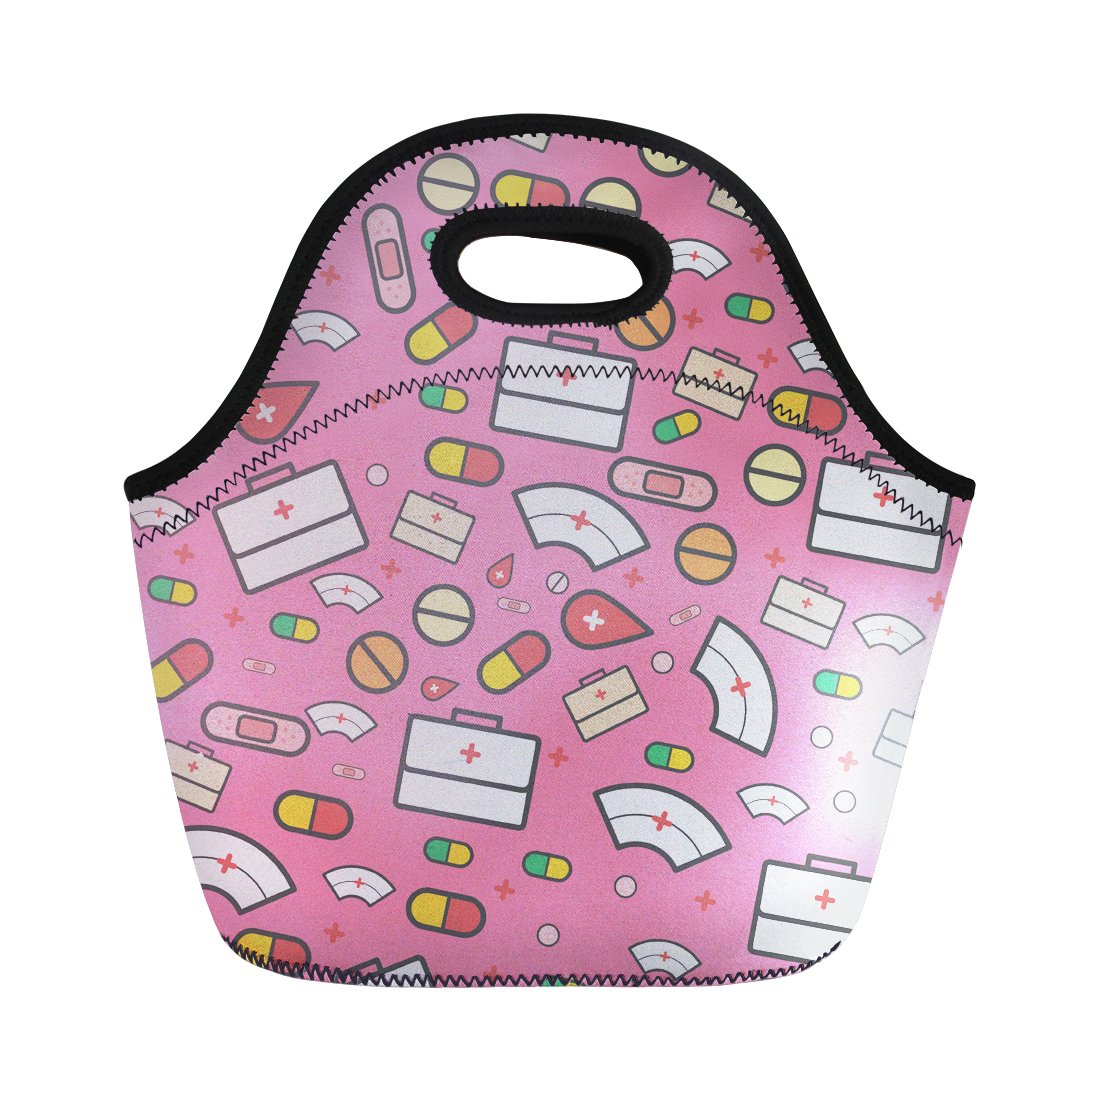 NOISYDESIGNS NEW Nurse Print Lunch Bags for Kids Thermal Picnic Bag Pinic Insulate Food Bags Customize Lunch Box Bag Cartoon